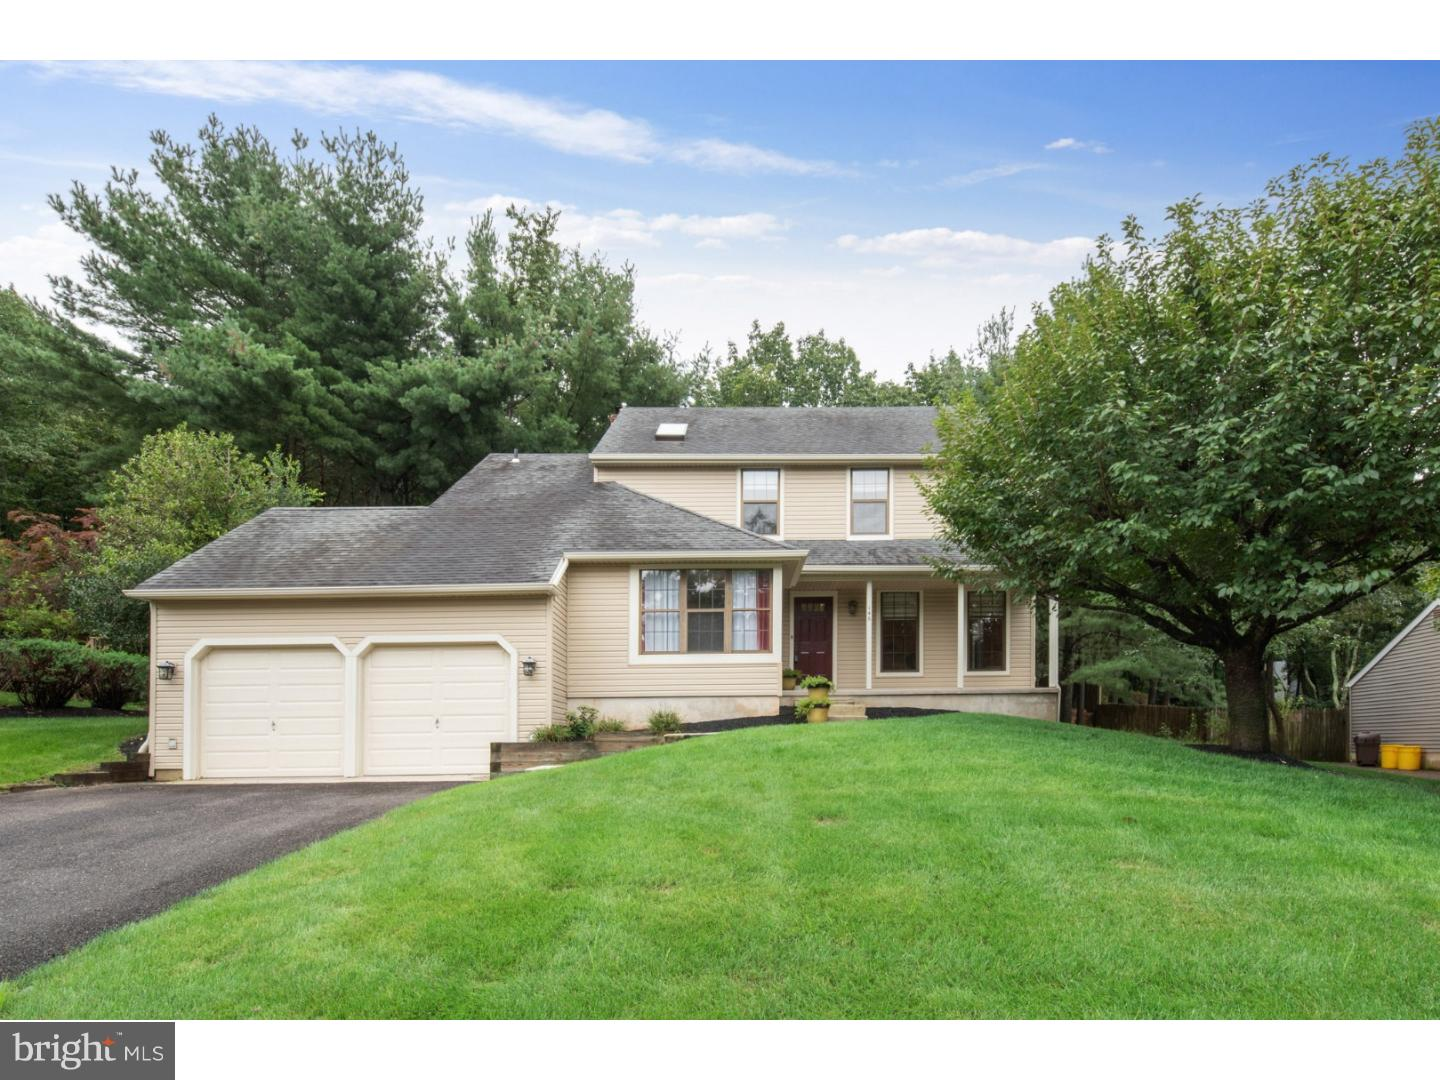 146 WILLIAM FEATHER DRIVE, VOORHEES, NJ 08043